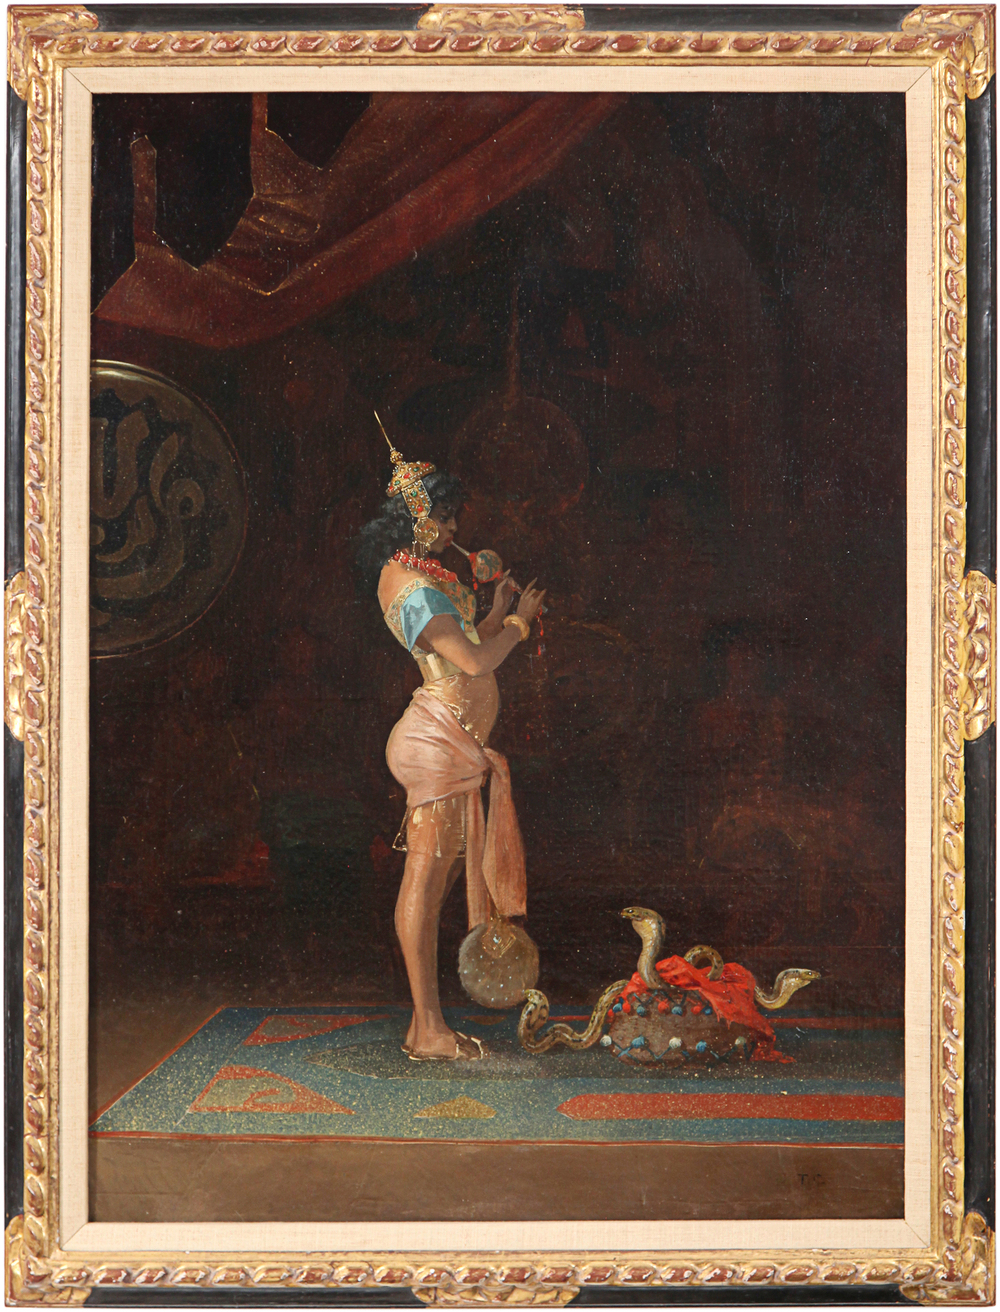 1. Couture, The Snake Charmer, ca 1860, oil on canvas, 31.5 x 23 in, signed with initials l.r.jpg